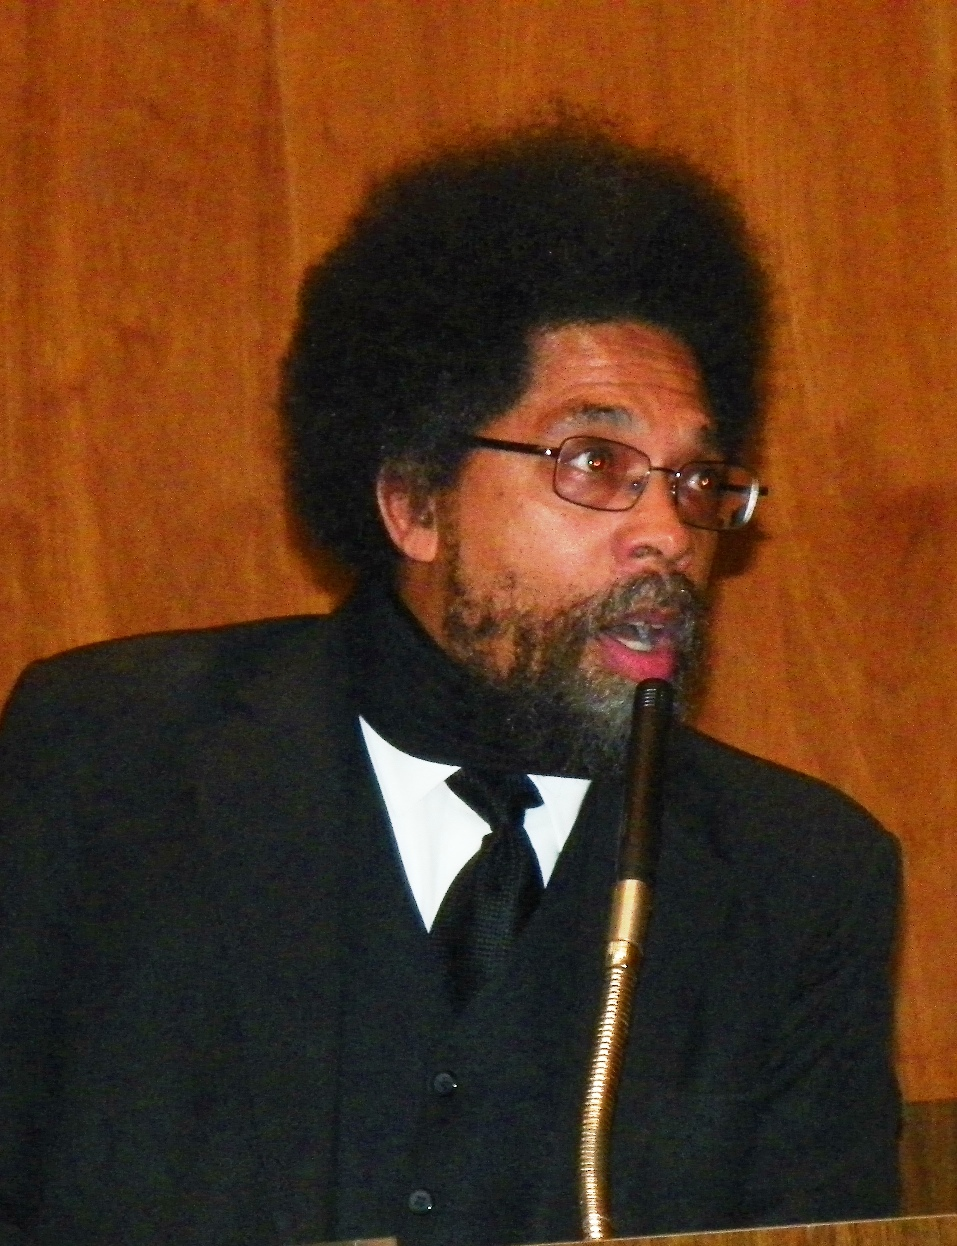 dr. cornel west essay Below is an excerpt from my june 29, 2009 interview with dr cornel west, who was at princeton at that time and has since returned, after teaching at the union theological seminary, to harvard university, where he was previously university professor of divinity and african american studies.